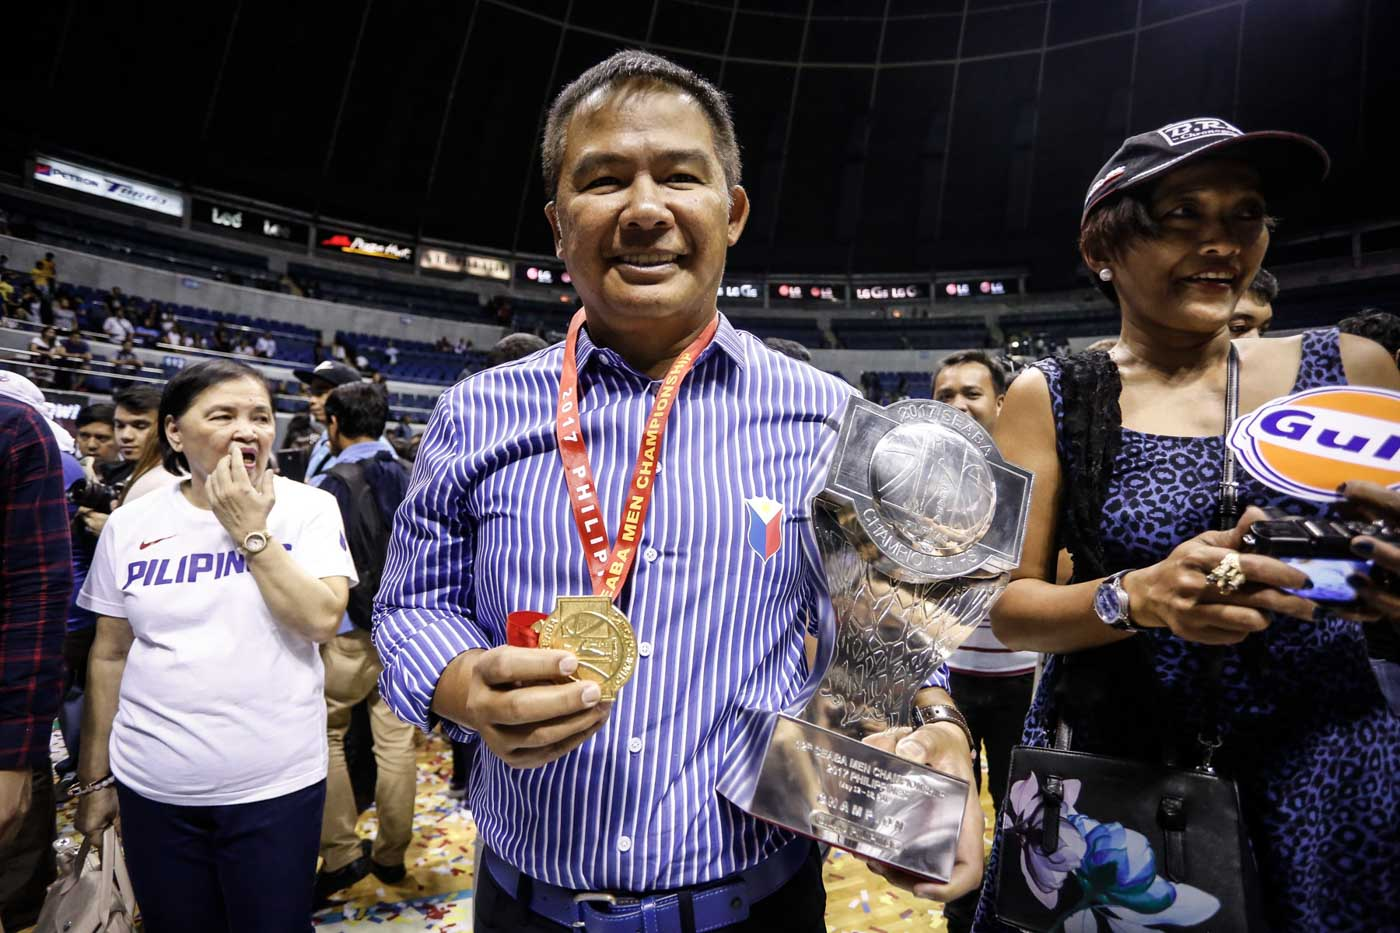 FIRST ON HOME SOIL. This is the first international tournament that Coach Chot Reyes won on home soil. Photo by Josh Albelda/Rappler